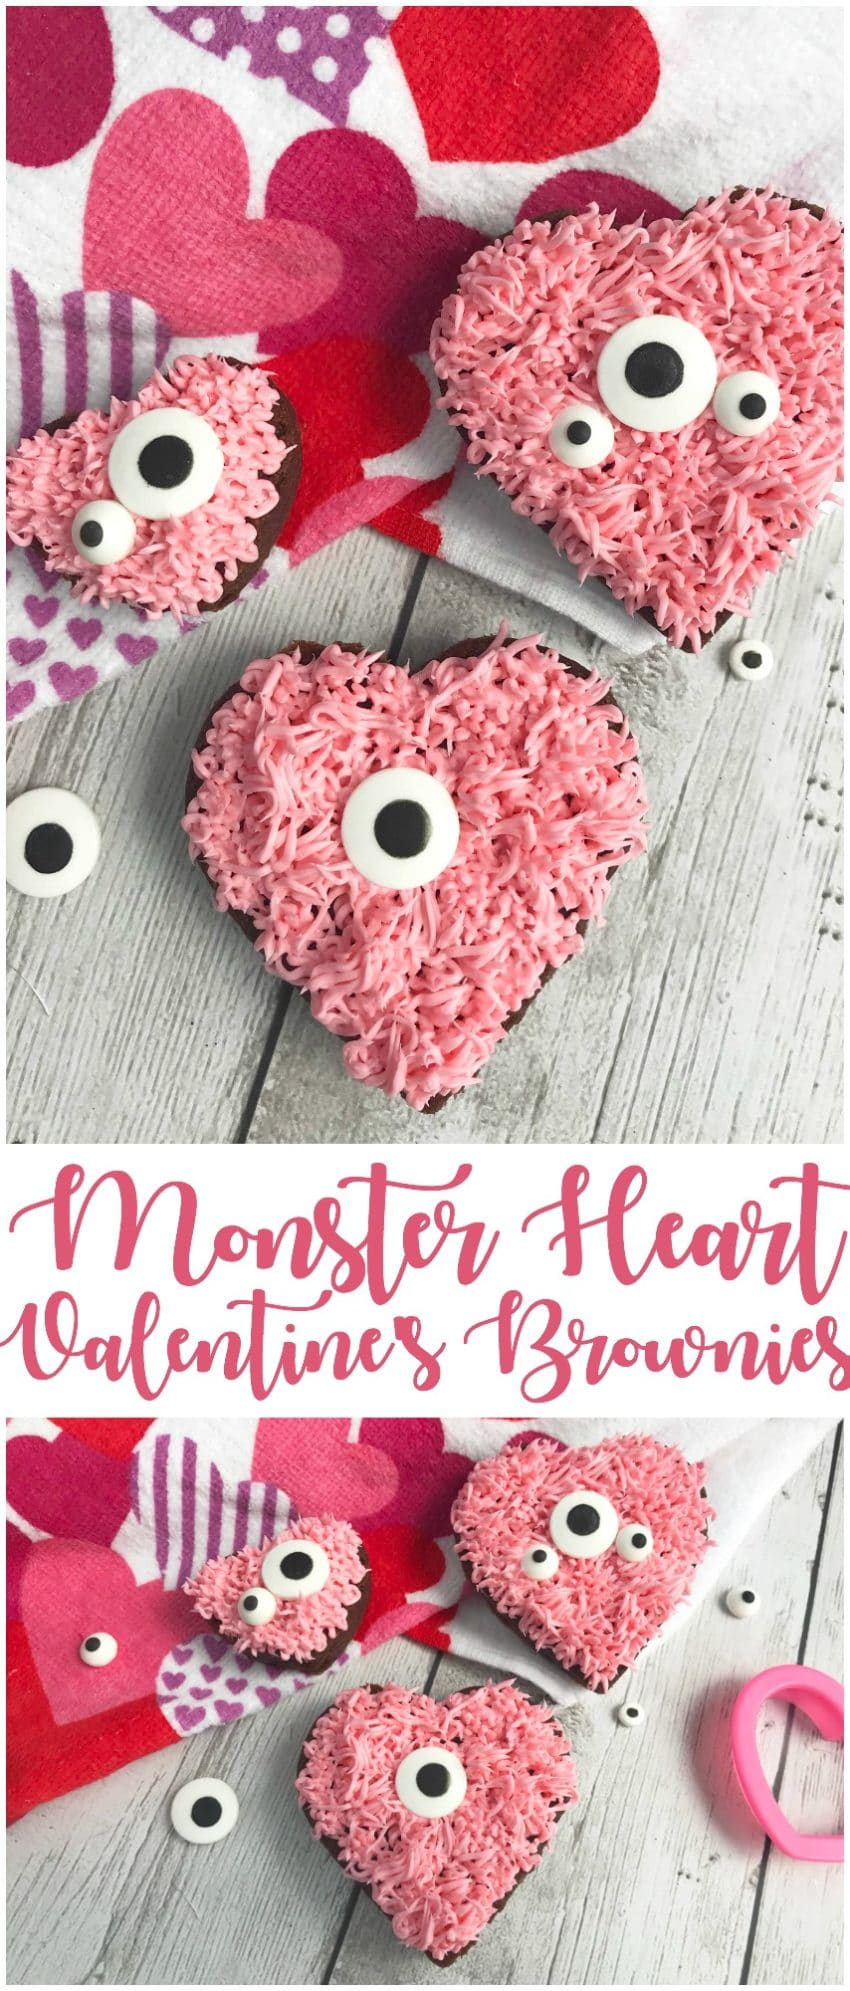 Valentine's monster heart brownies that are so cute, it's scary! These brownies are simple to make and fun to decorate!